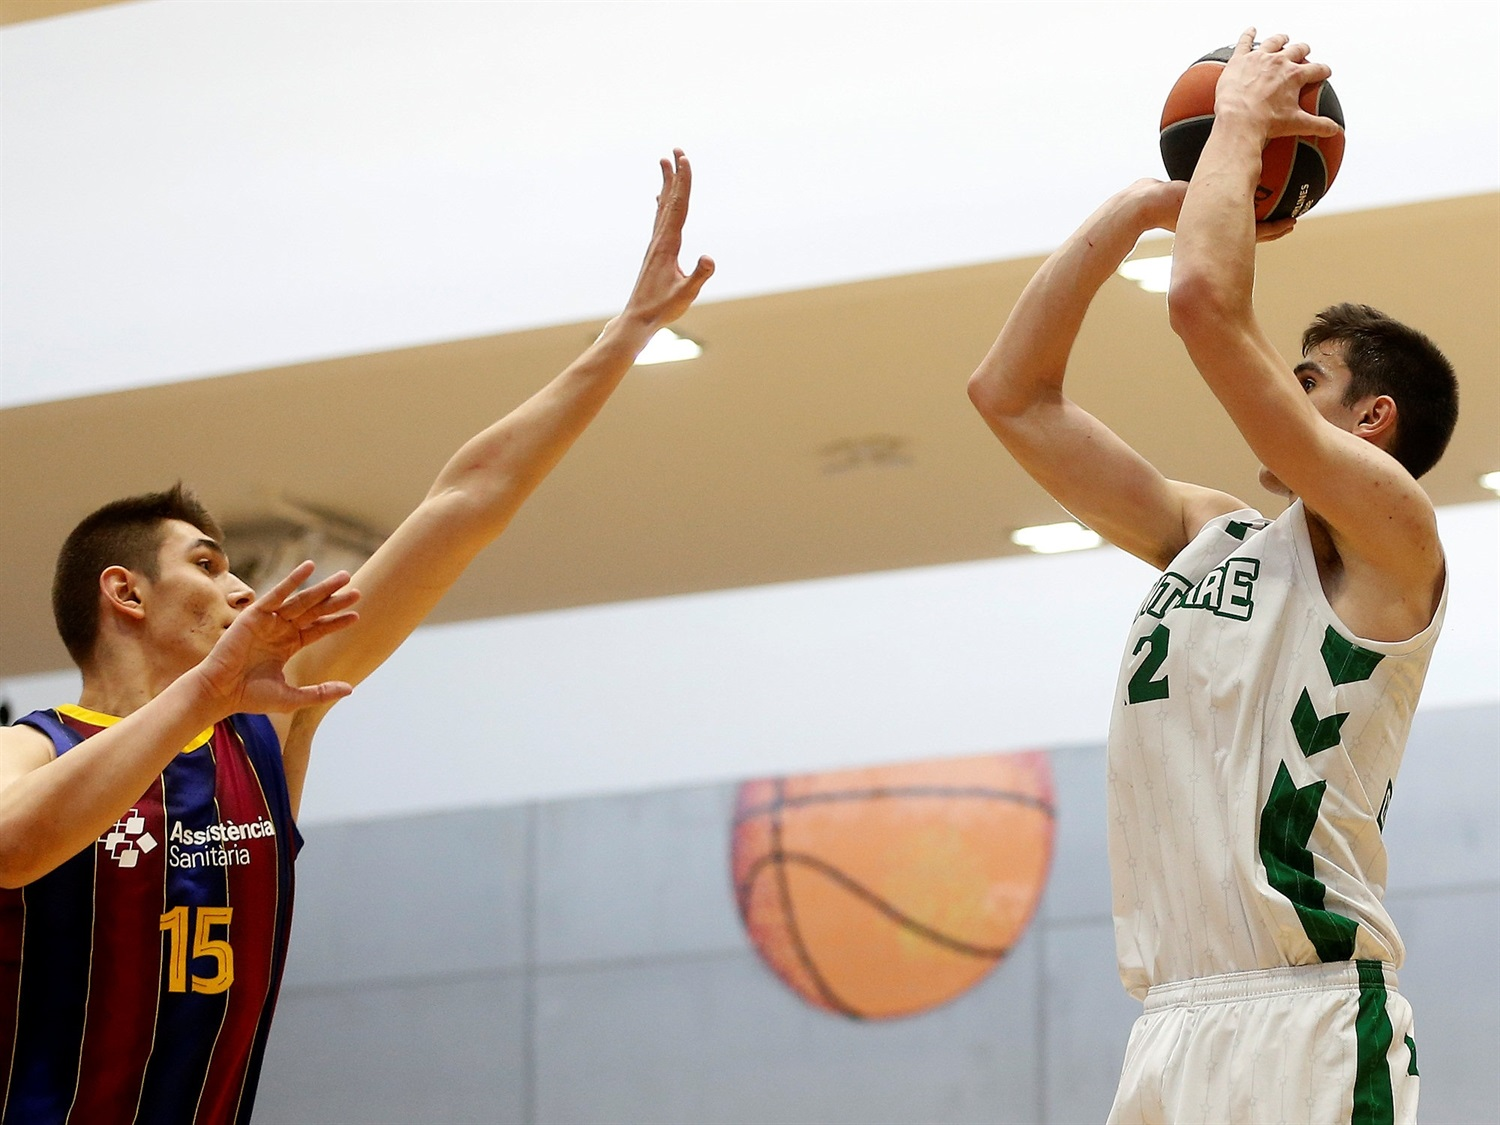 Maxime Raynaud - U18 Nanterre 92 (photo Miguel Angel Polo) - JT20